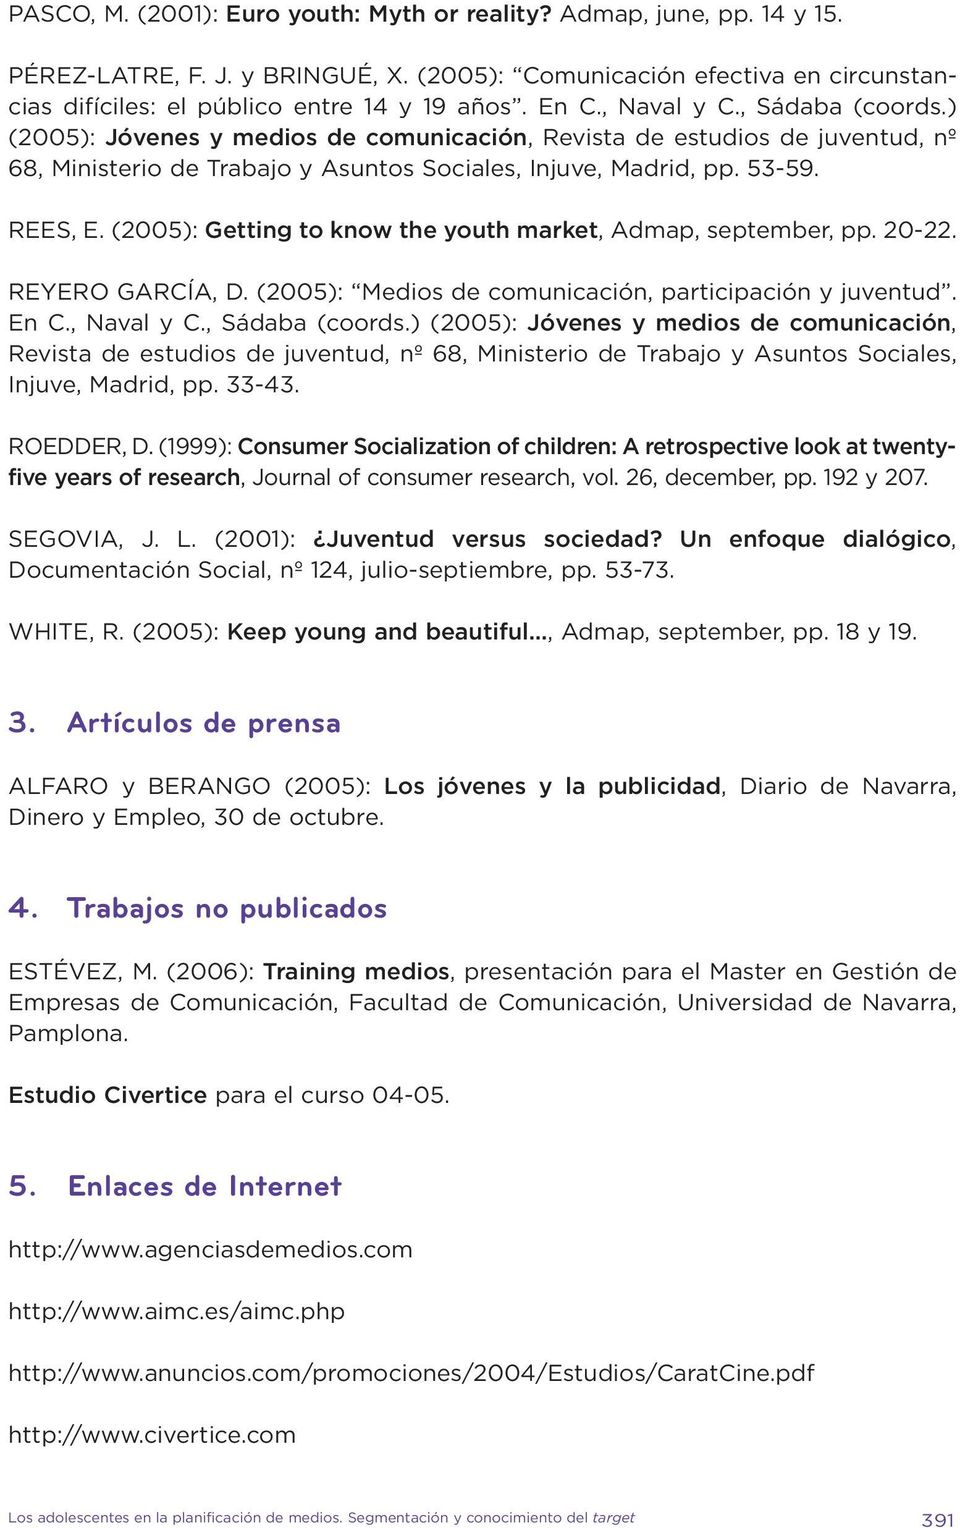 (2005): Getting to know the youth market, Admap, september, pp. 20-22. REYERO GARCÍA, D. (2005): Medios de comunicación, participación y juventud. En C., Naval y C., Sádaba (coords.